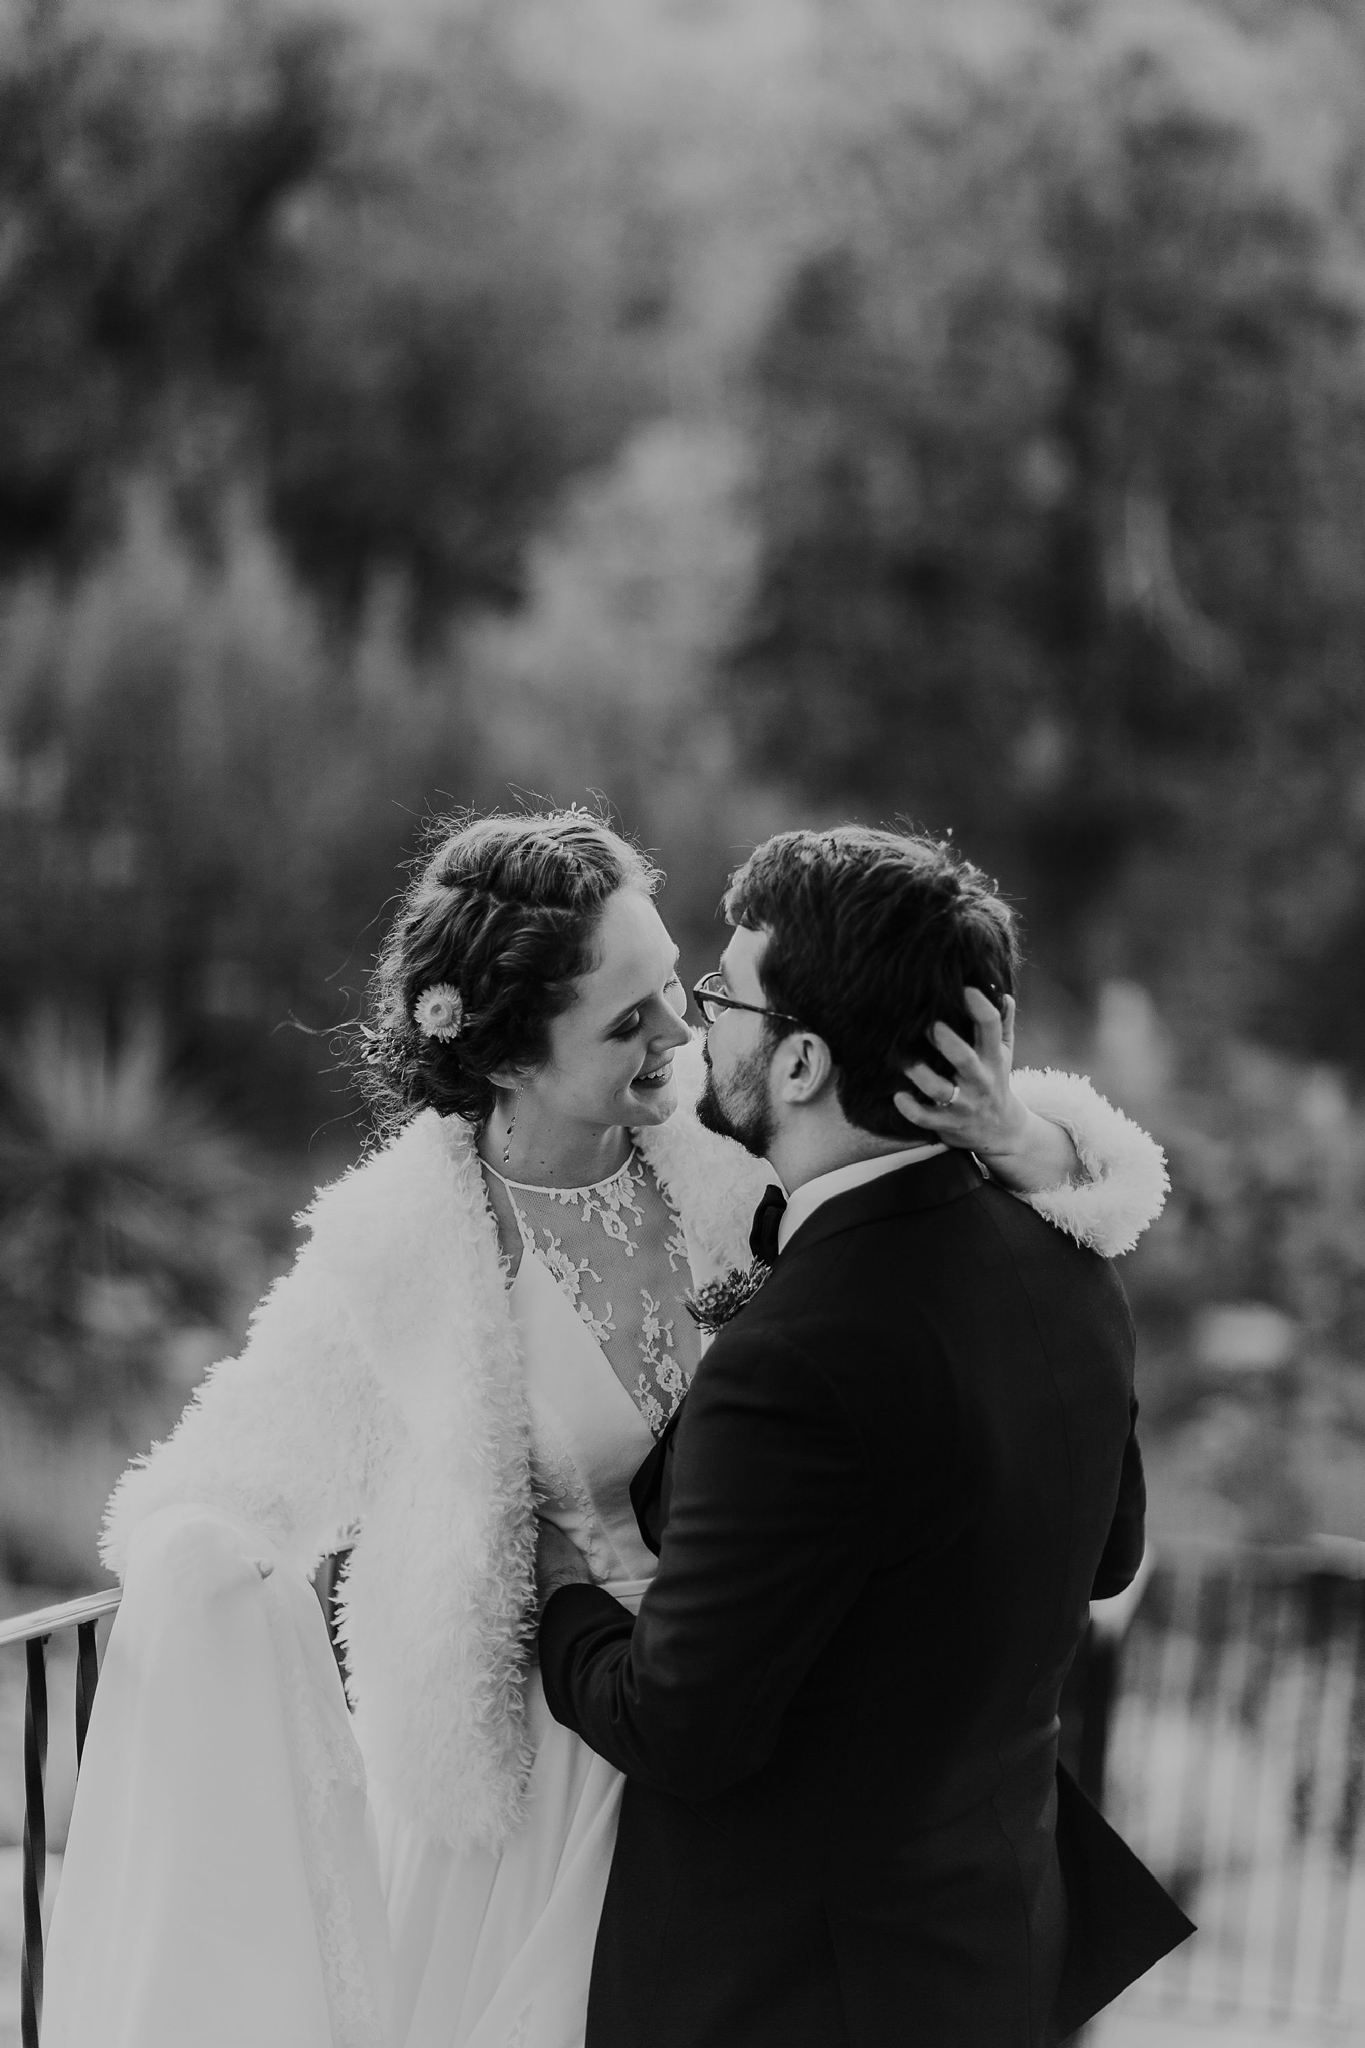 Alicia+lucia+photography+-+albuquerque+wedding+photographer+-+santa+fe+wedding+photography+-+new+mexico+wedding+photographer+-+new+mexico+wedding+-+albuquerque+wedding+-+santa+fe+wedding+-+wedding+romantics_0010.jpg